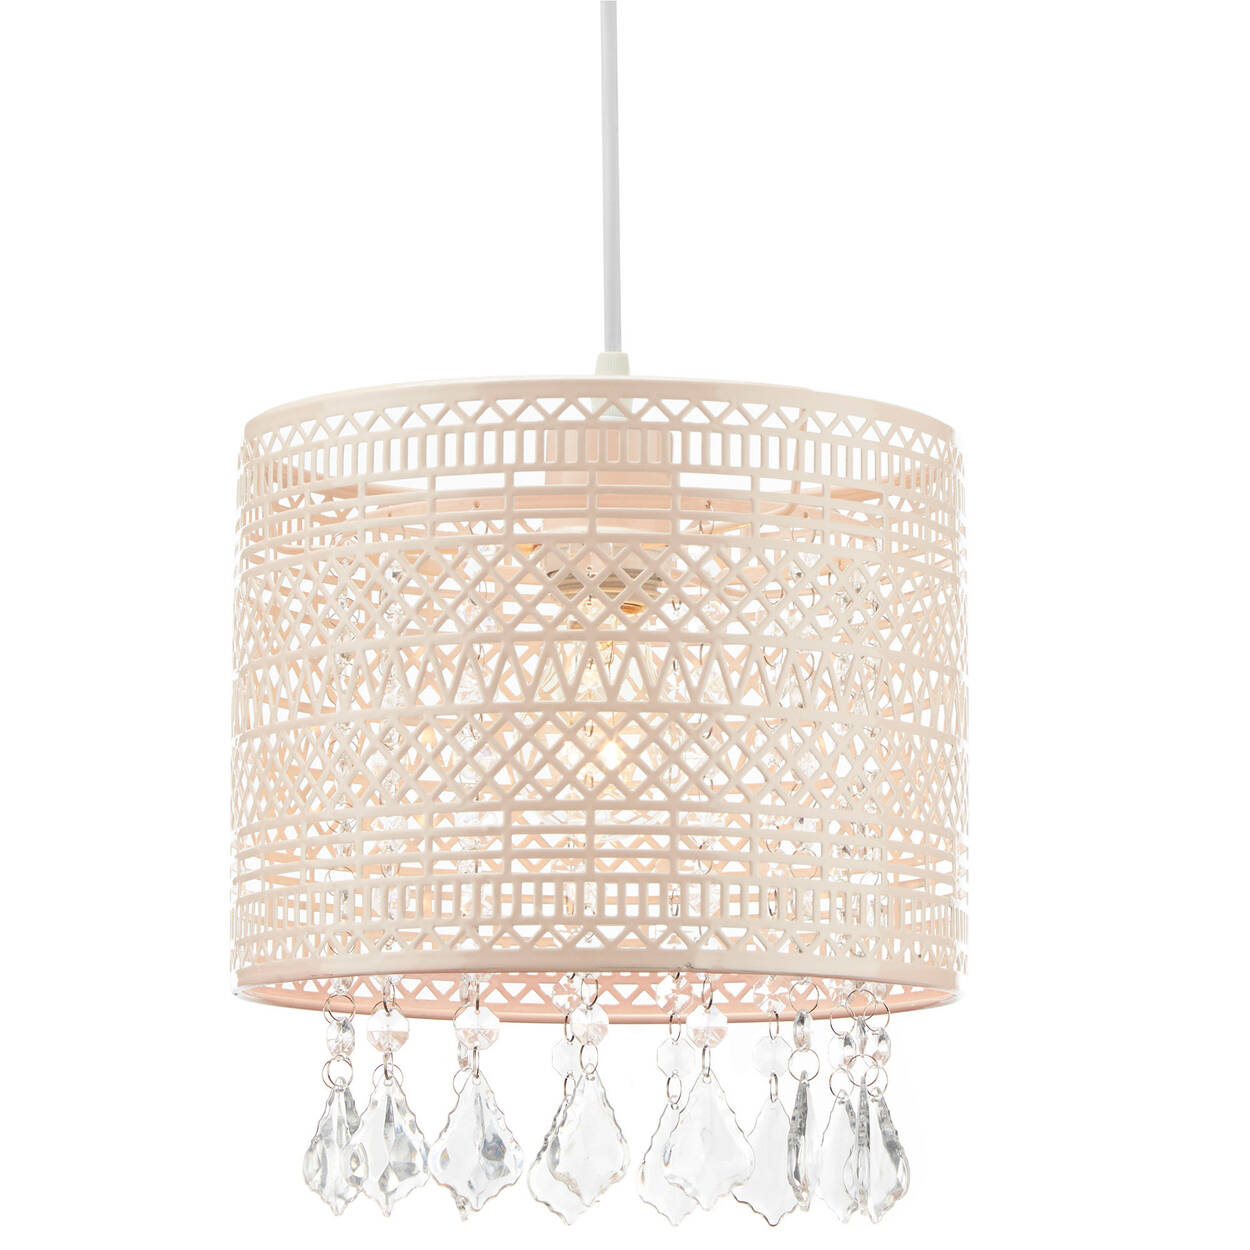 Cut-Out Ceiling Lamp with Decorative Droplets | Bouclair.com